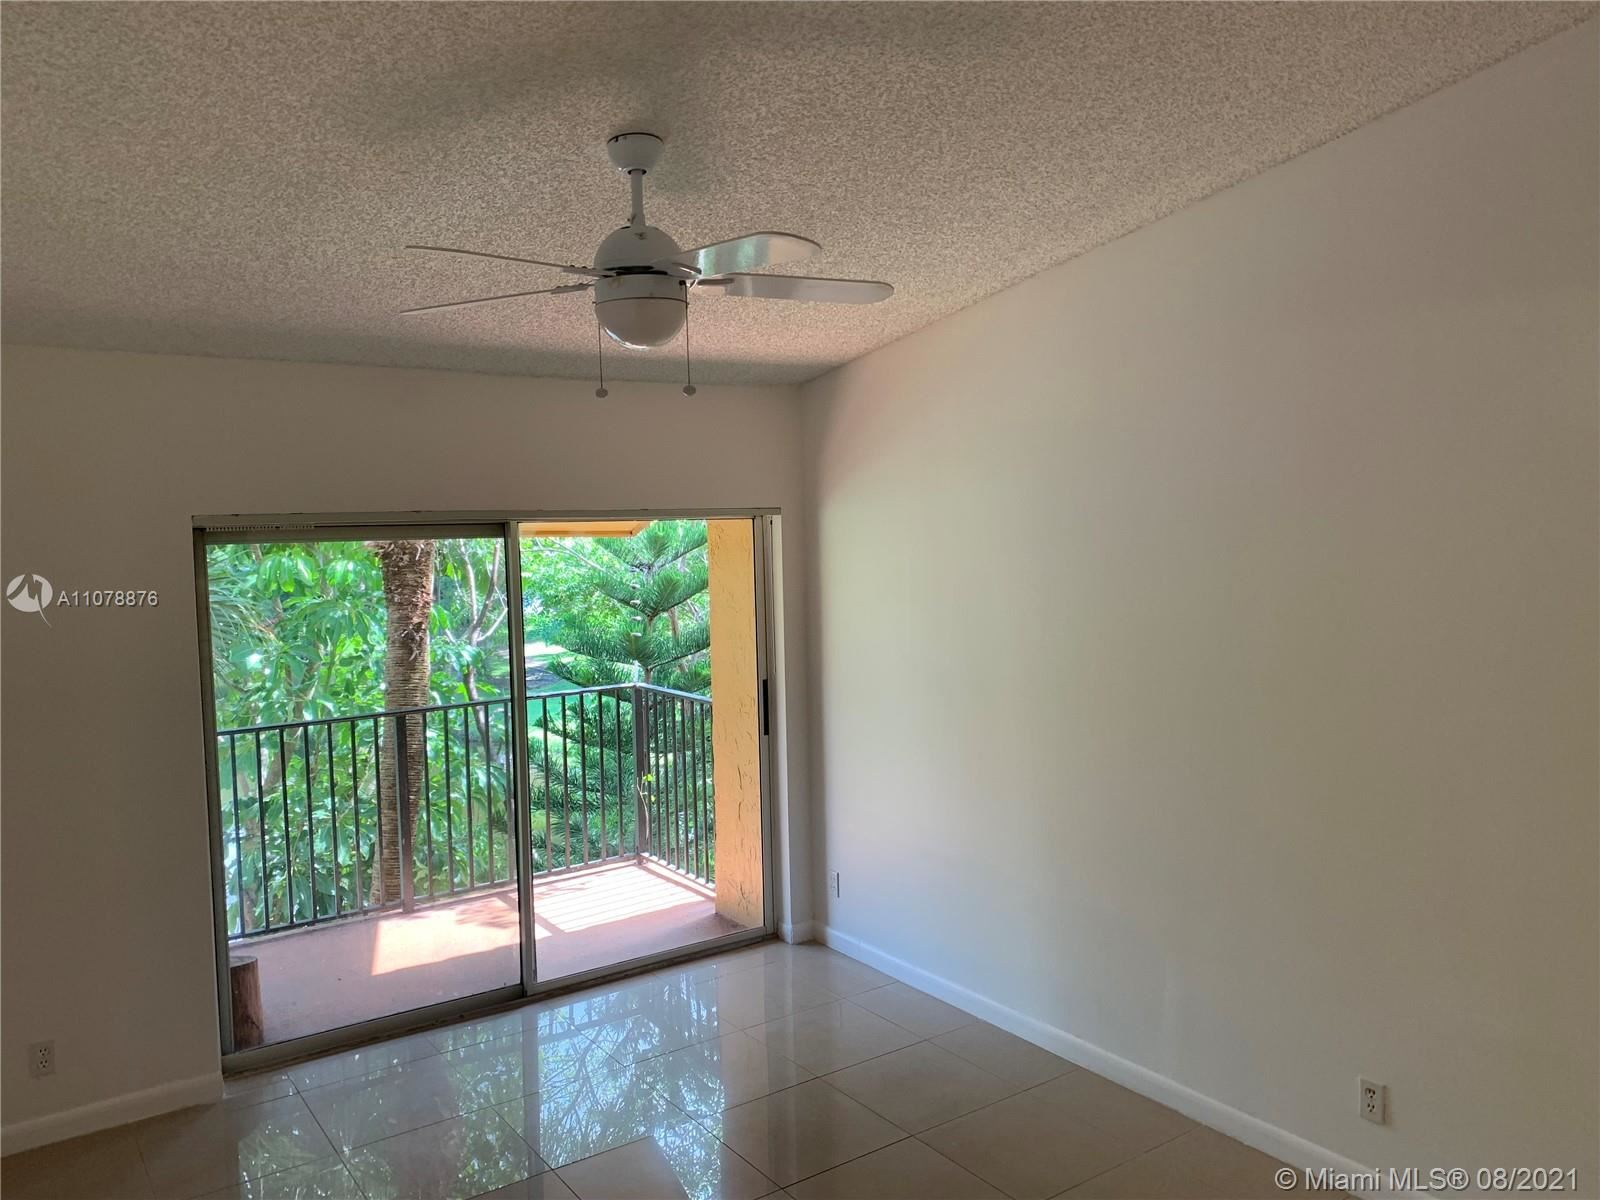 Photo of 10749 Cleary Blvd #310, Plantation, FL 33324 (MLS # A11078876)